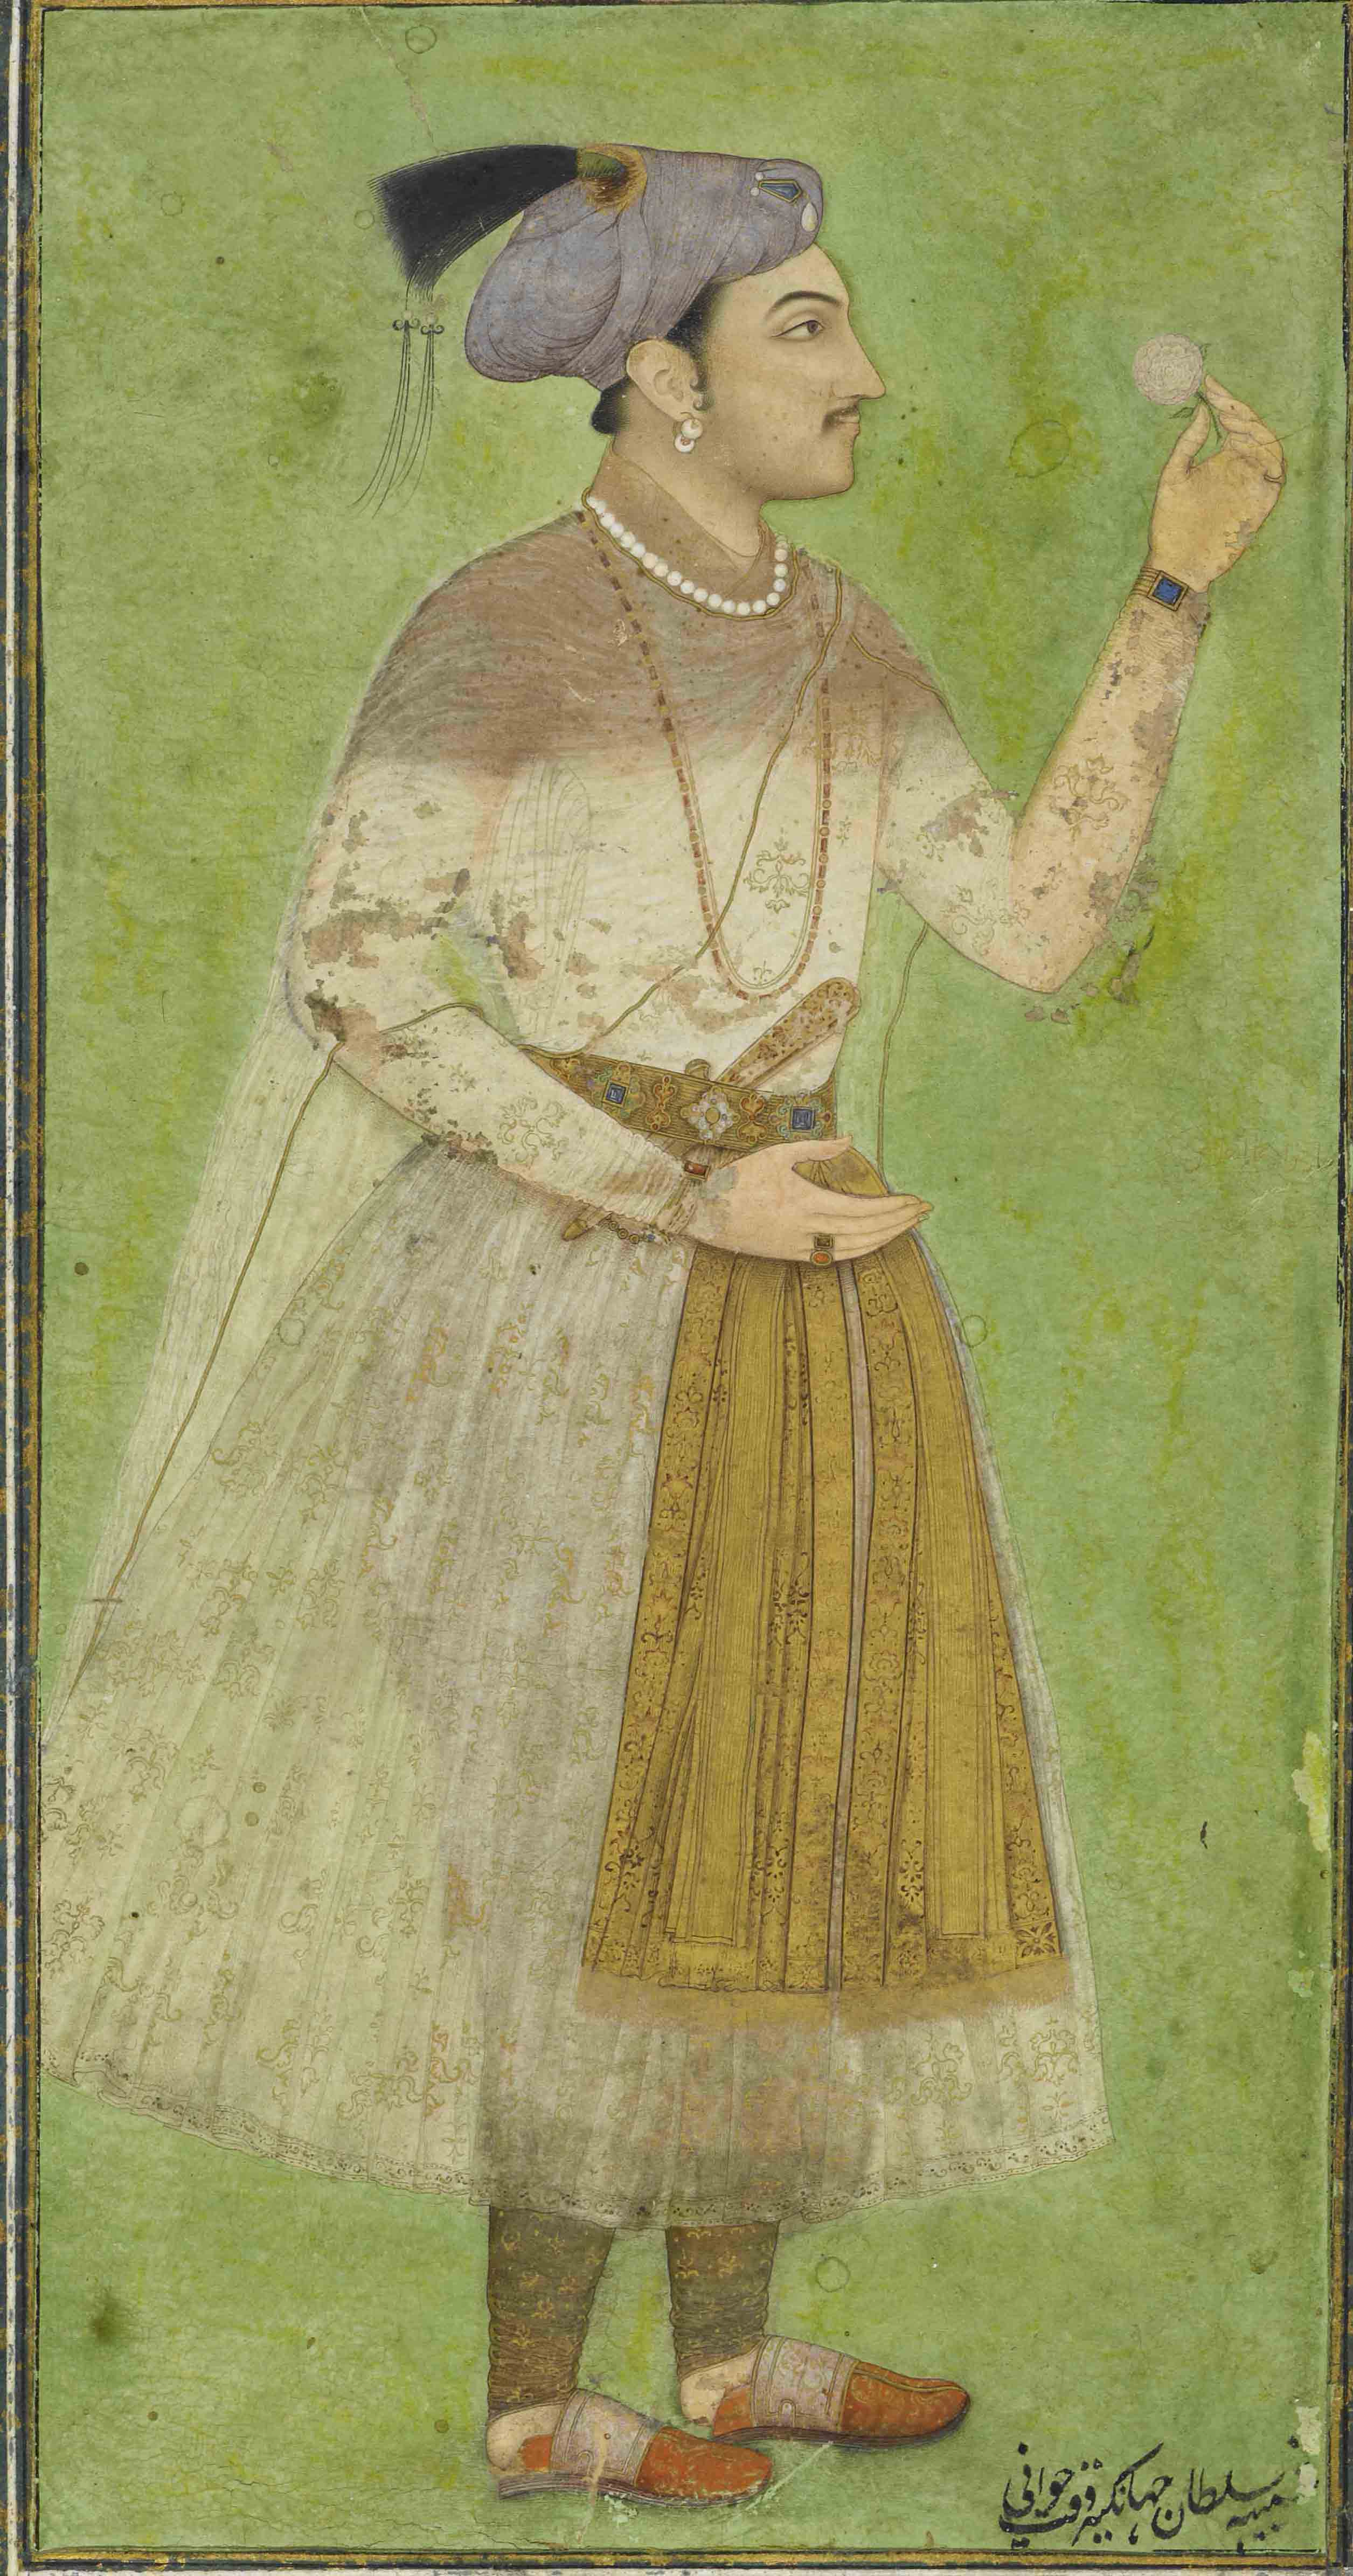 The mughals 1 vintage indian clothing pic 2 portrait of prince salim 1620 30 the 17th century mughal costume sciox Choice Image